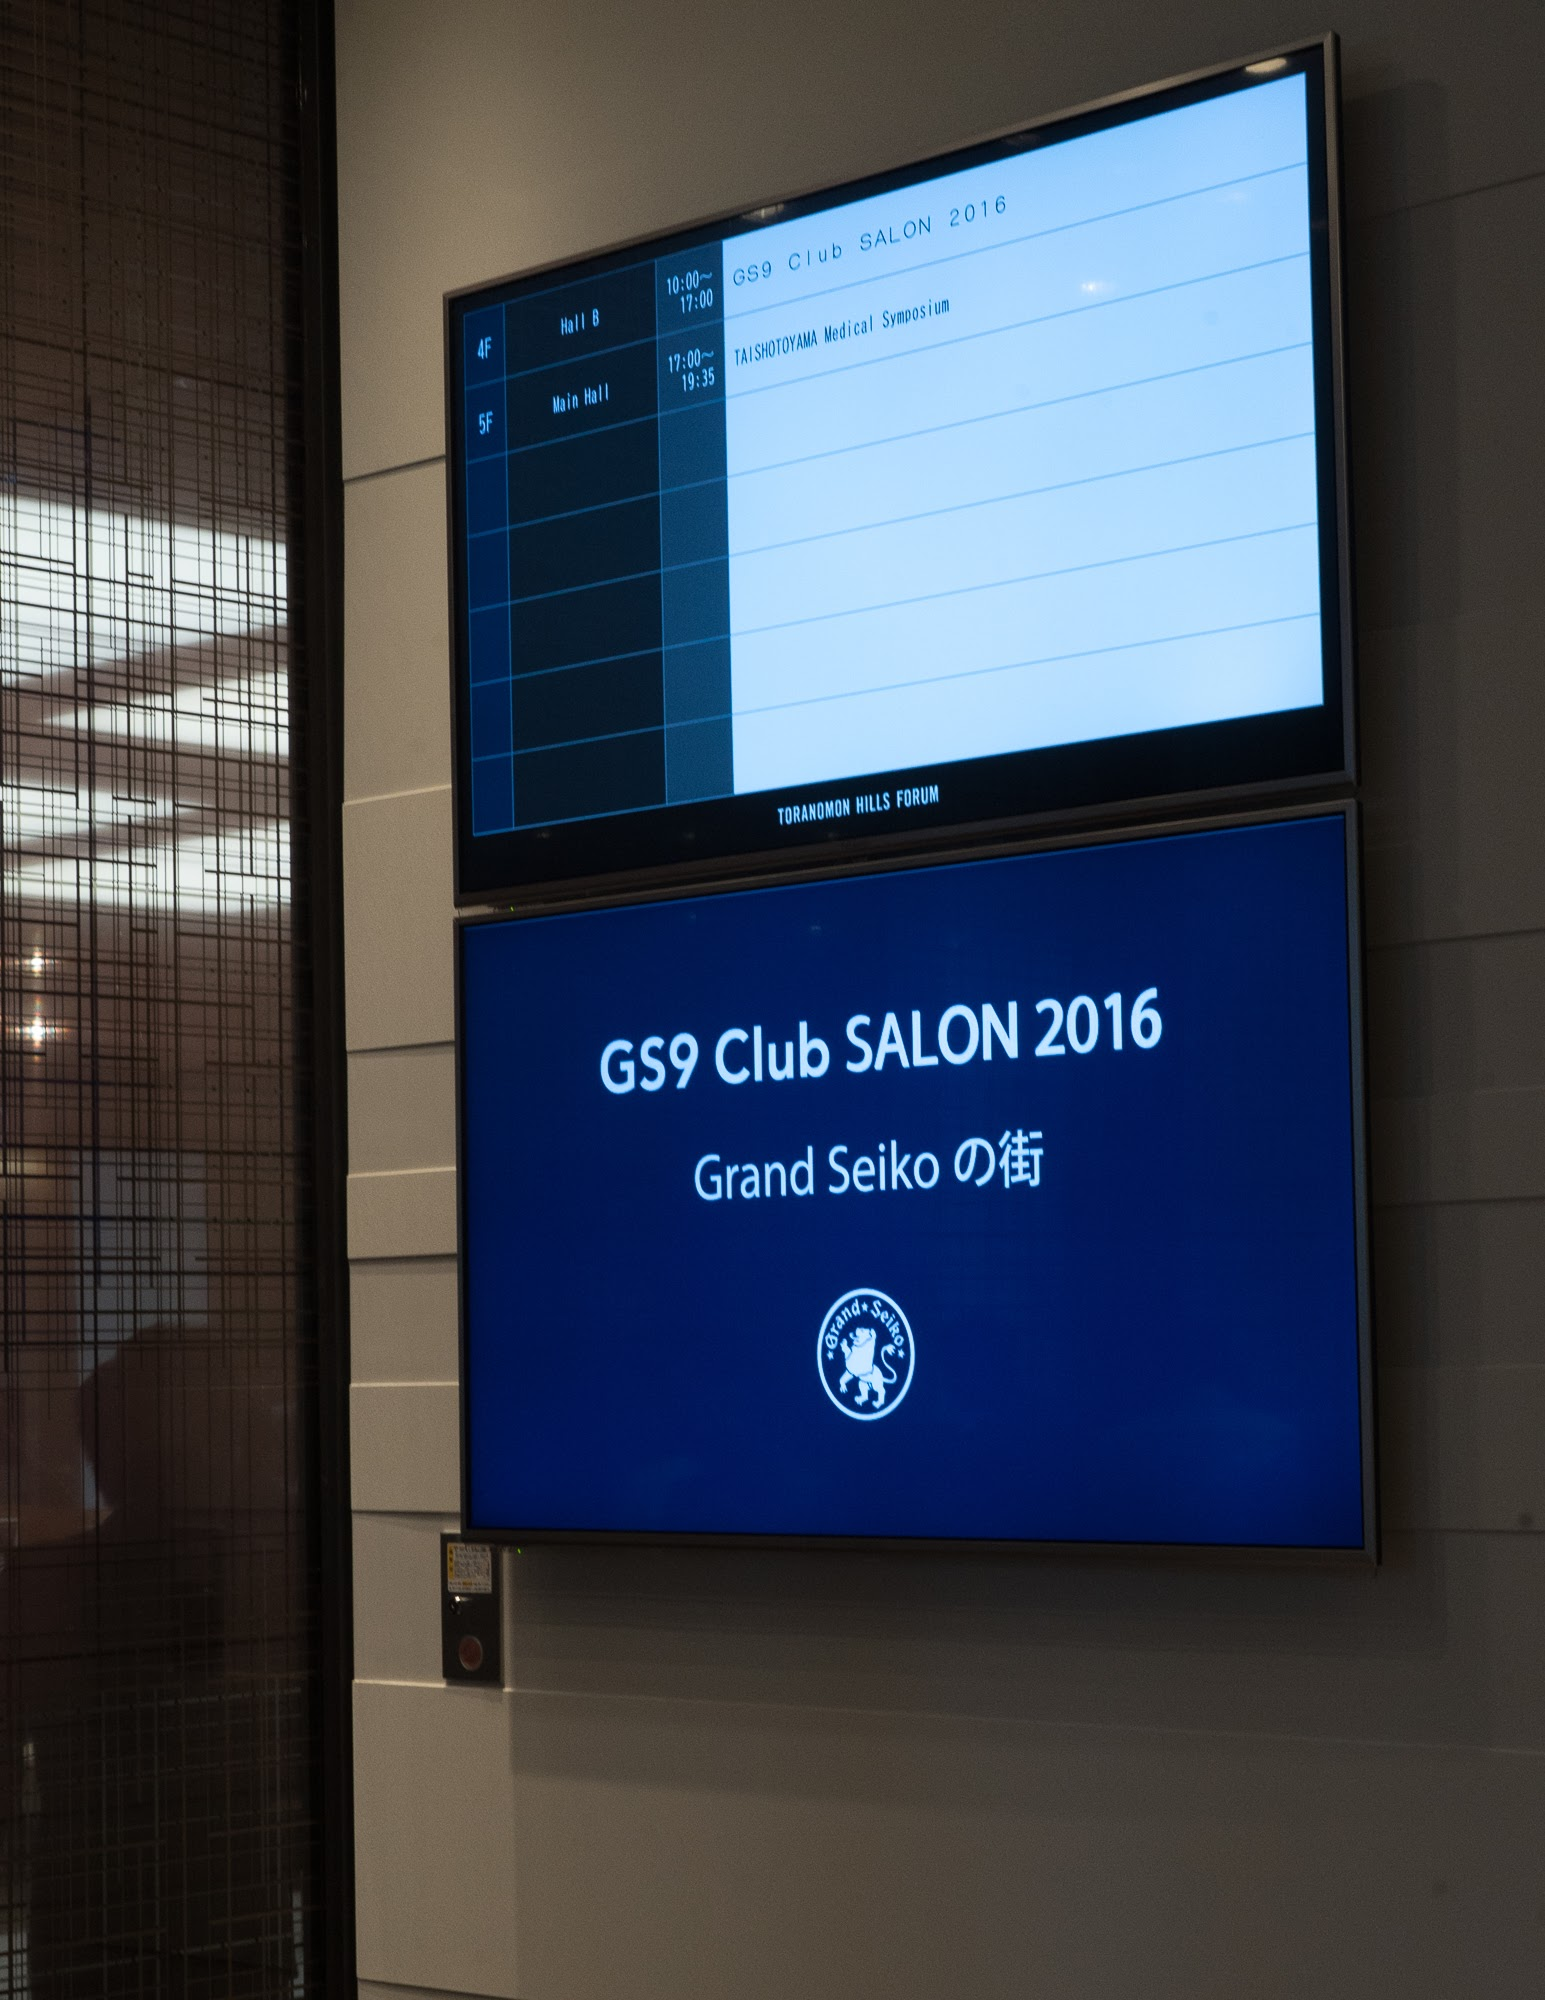 GS9 Club Salon